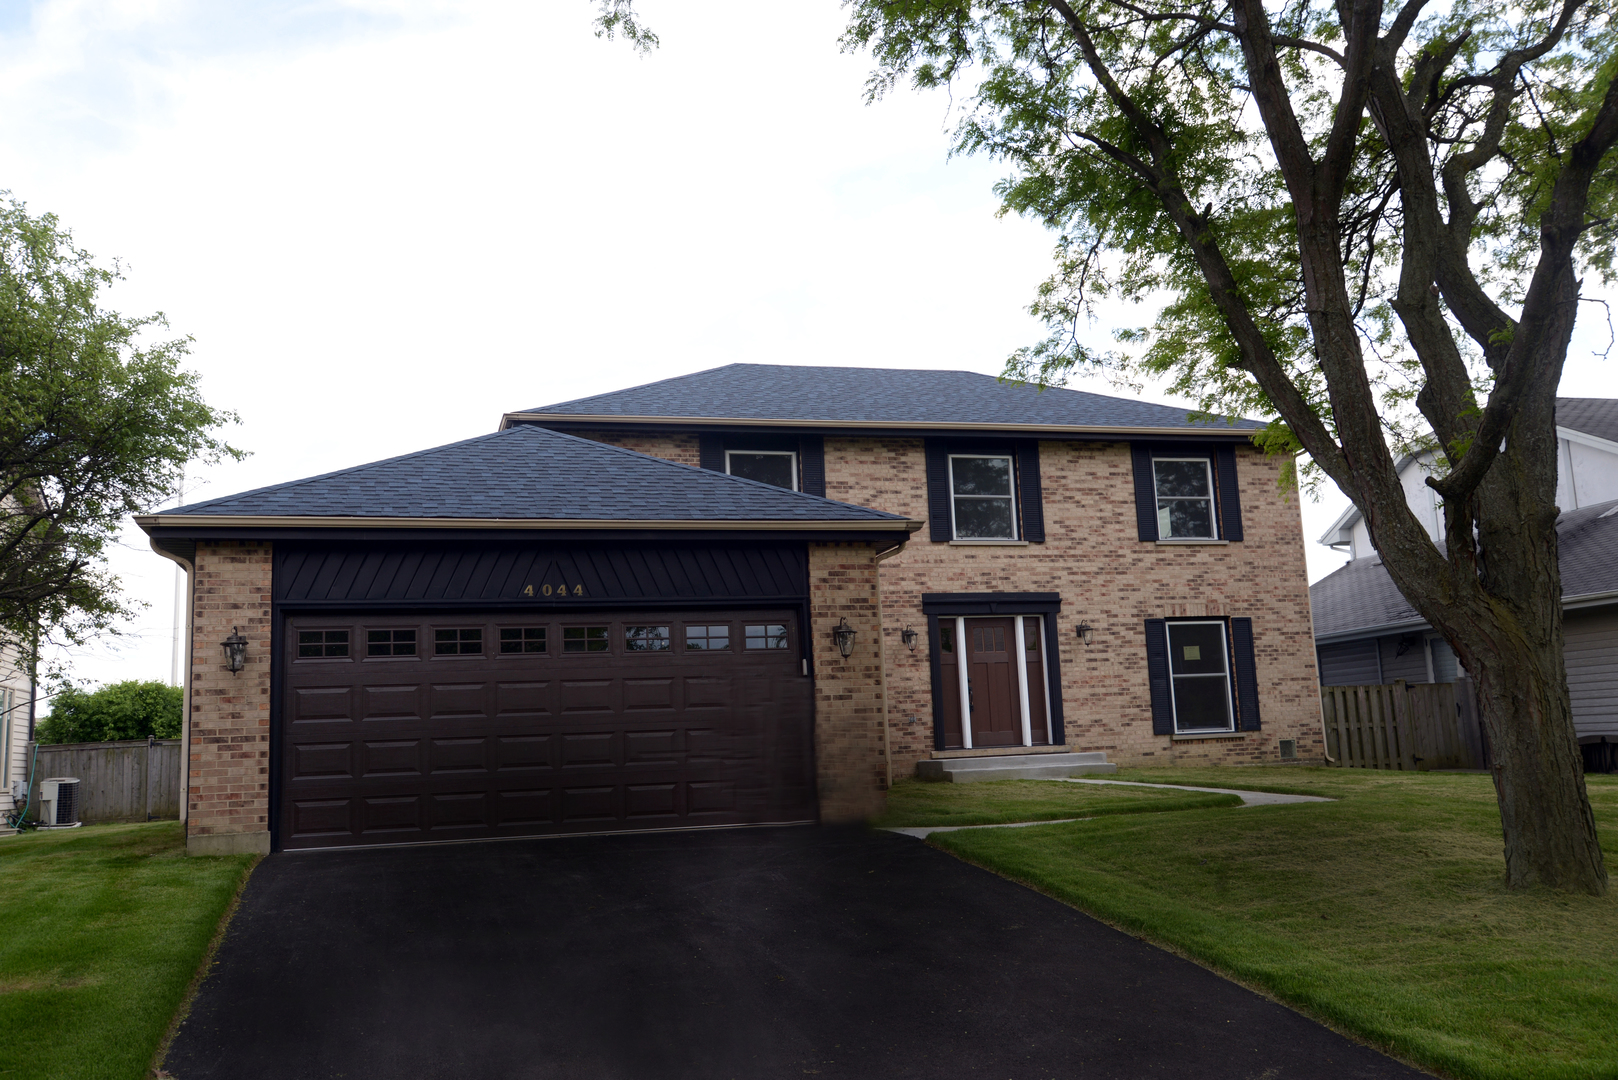 4044 LINDENWOOD Lane, Northbrook in Cook County, IL 60062 Home for Sale